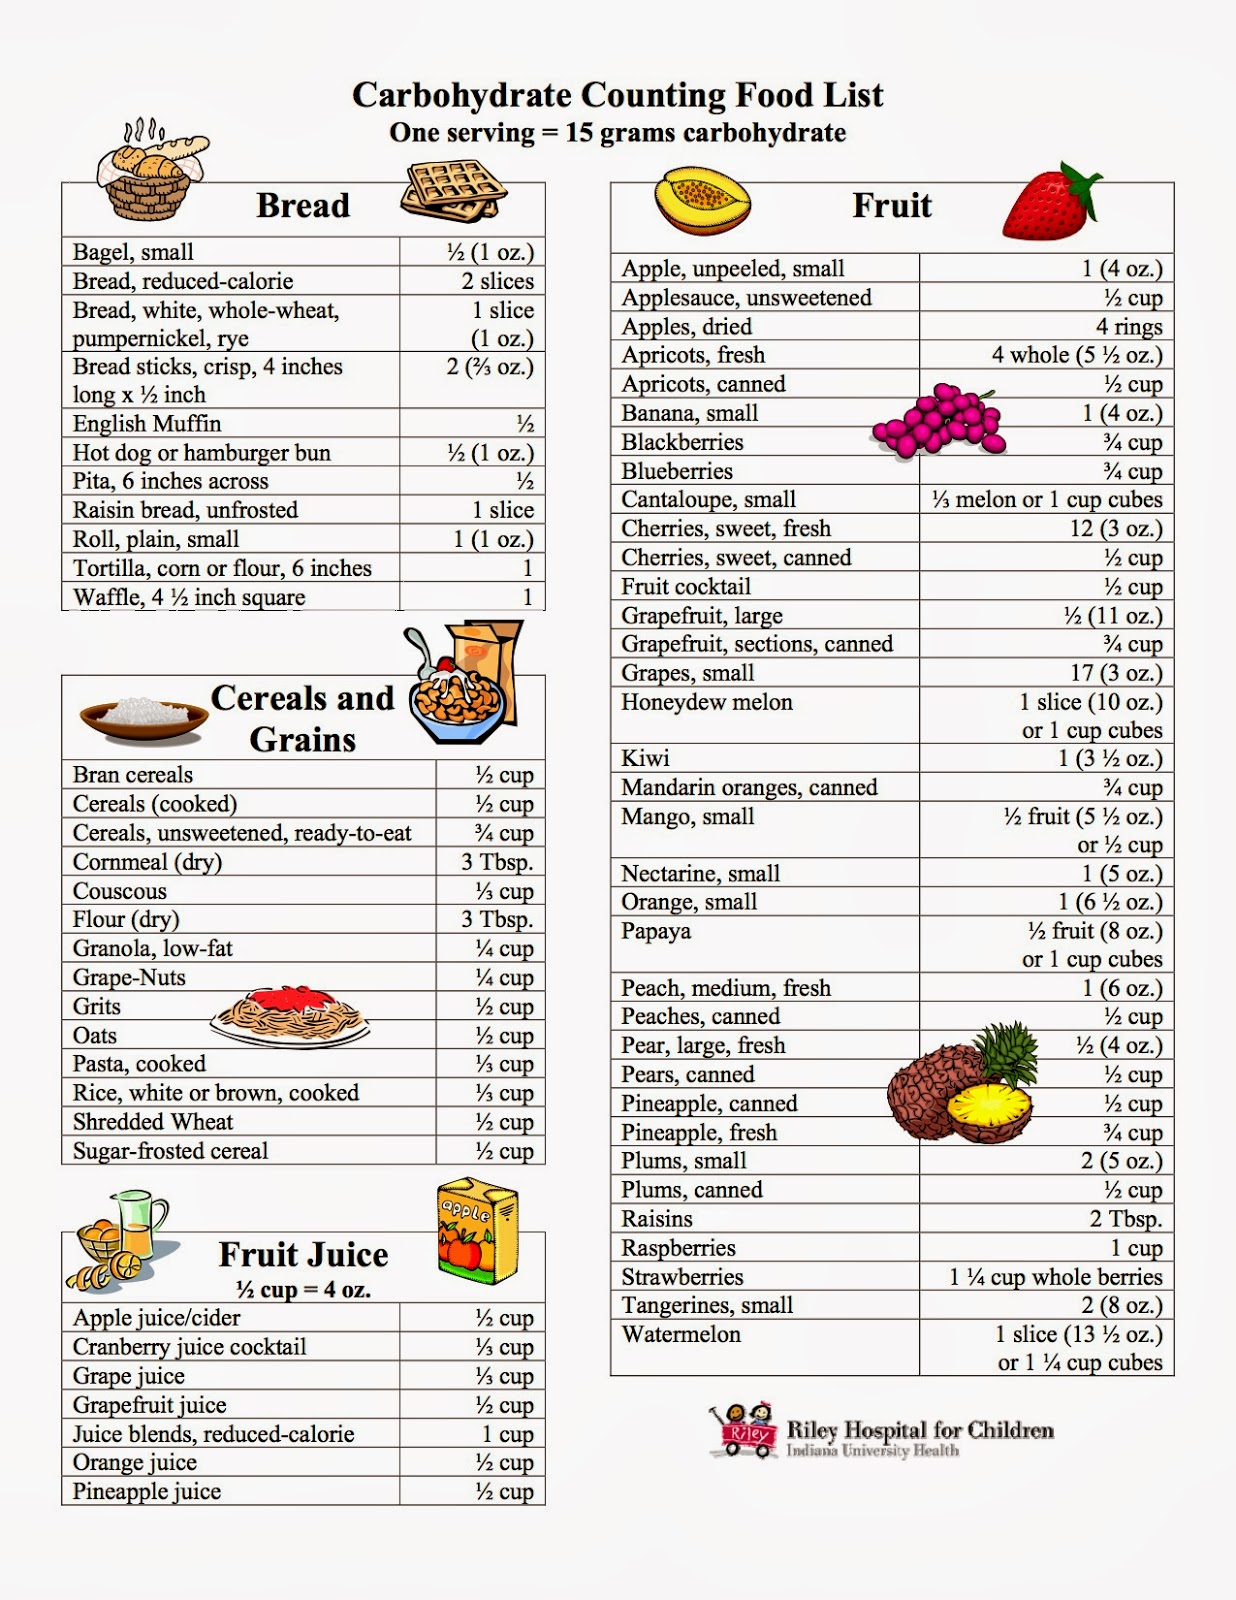 Carbohydrate Counting Food List Spanish